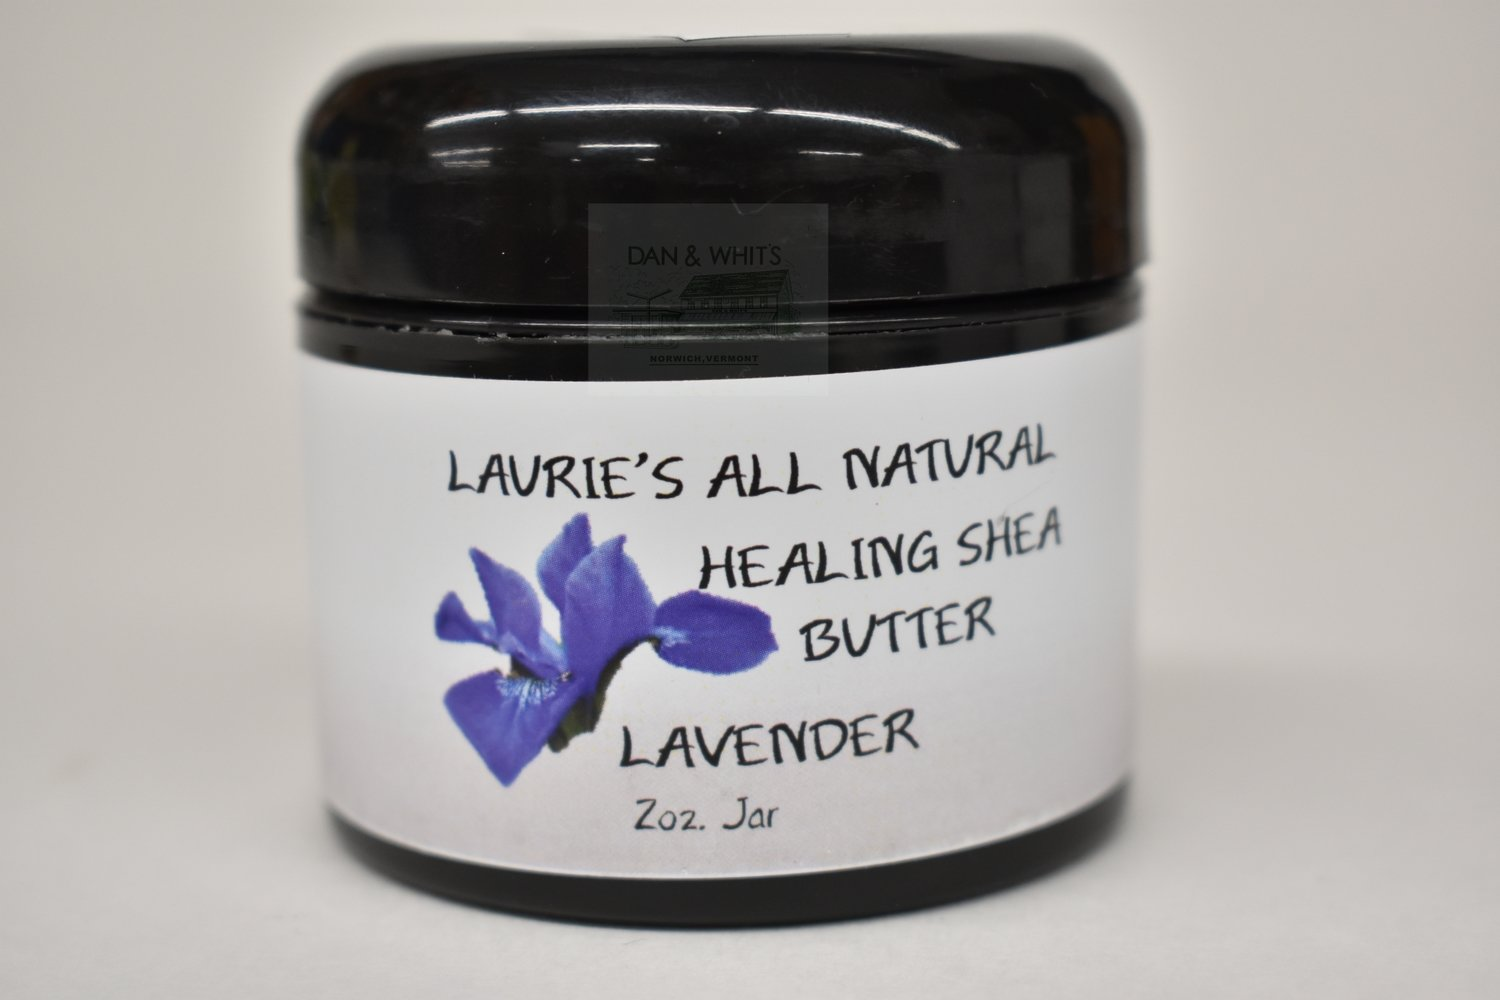 Laurie's All Natural Healing Shea Butter with Lavender 2oz